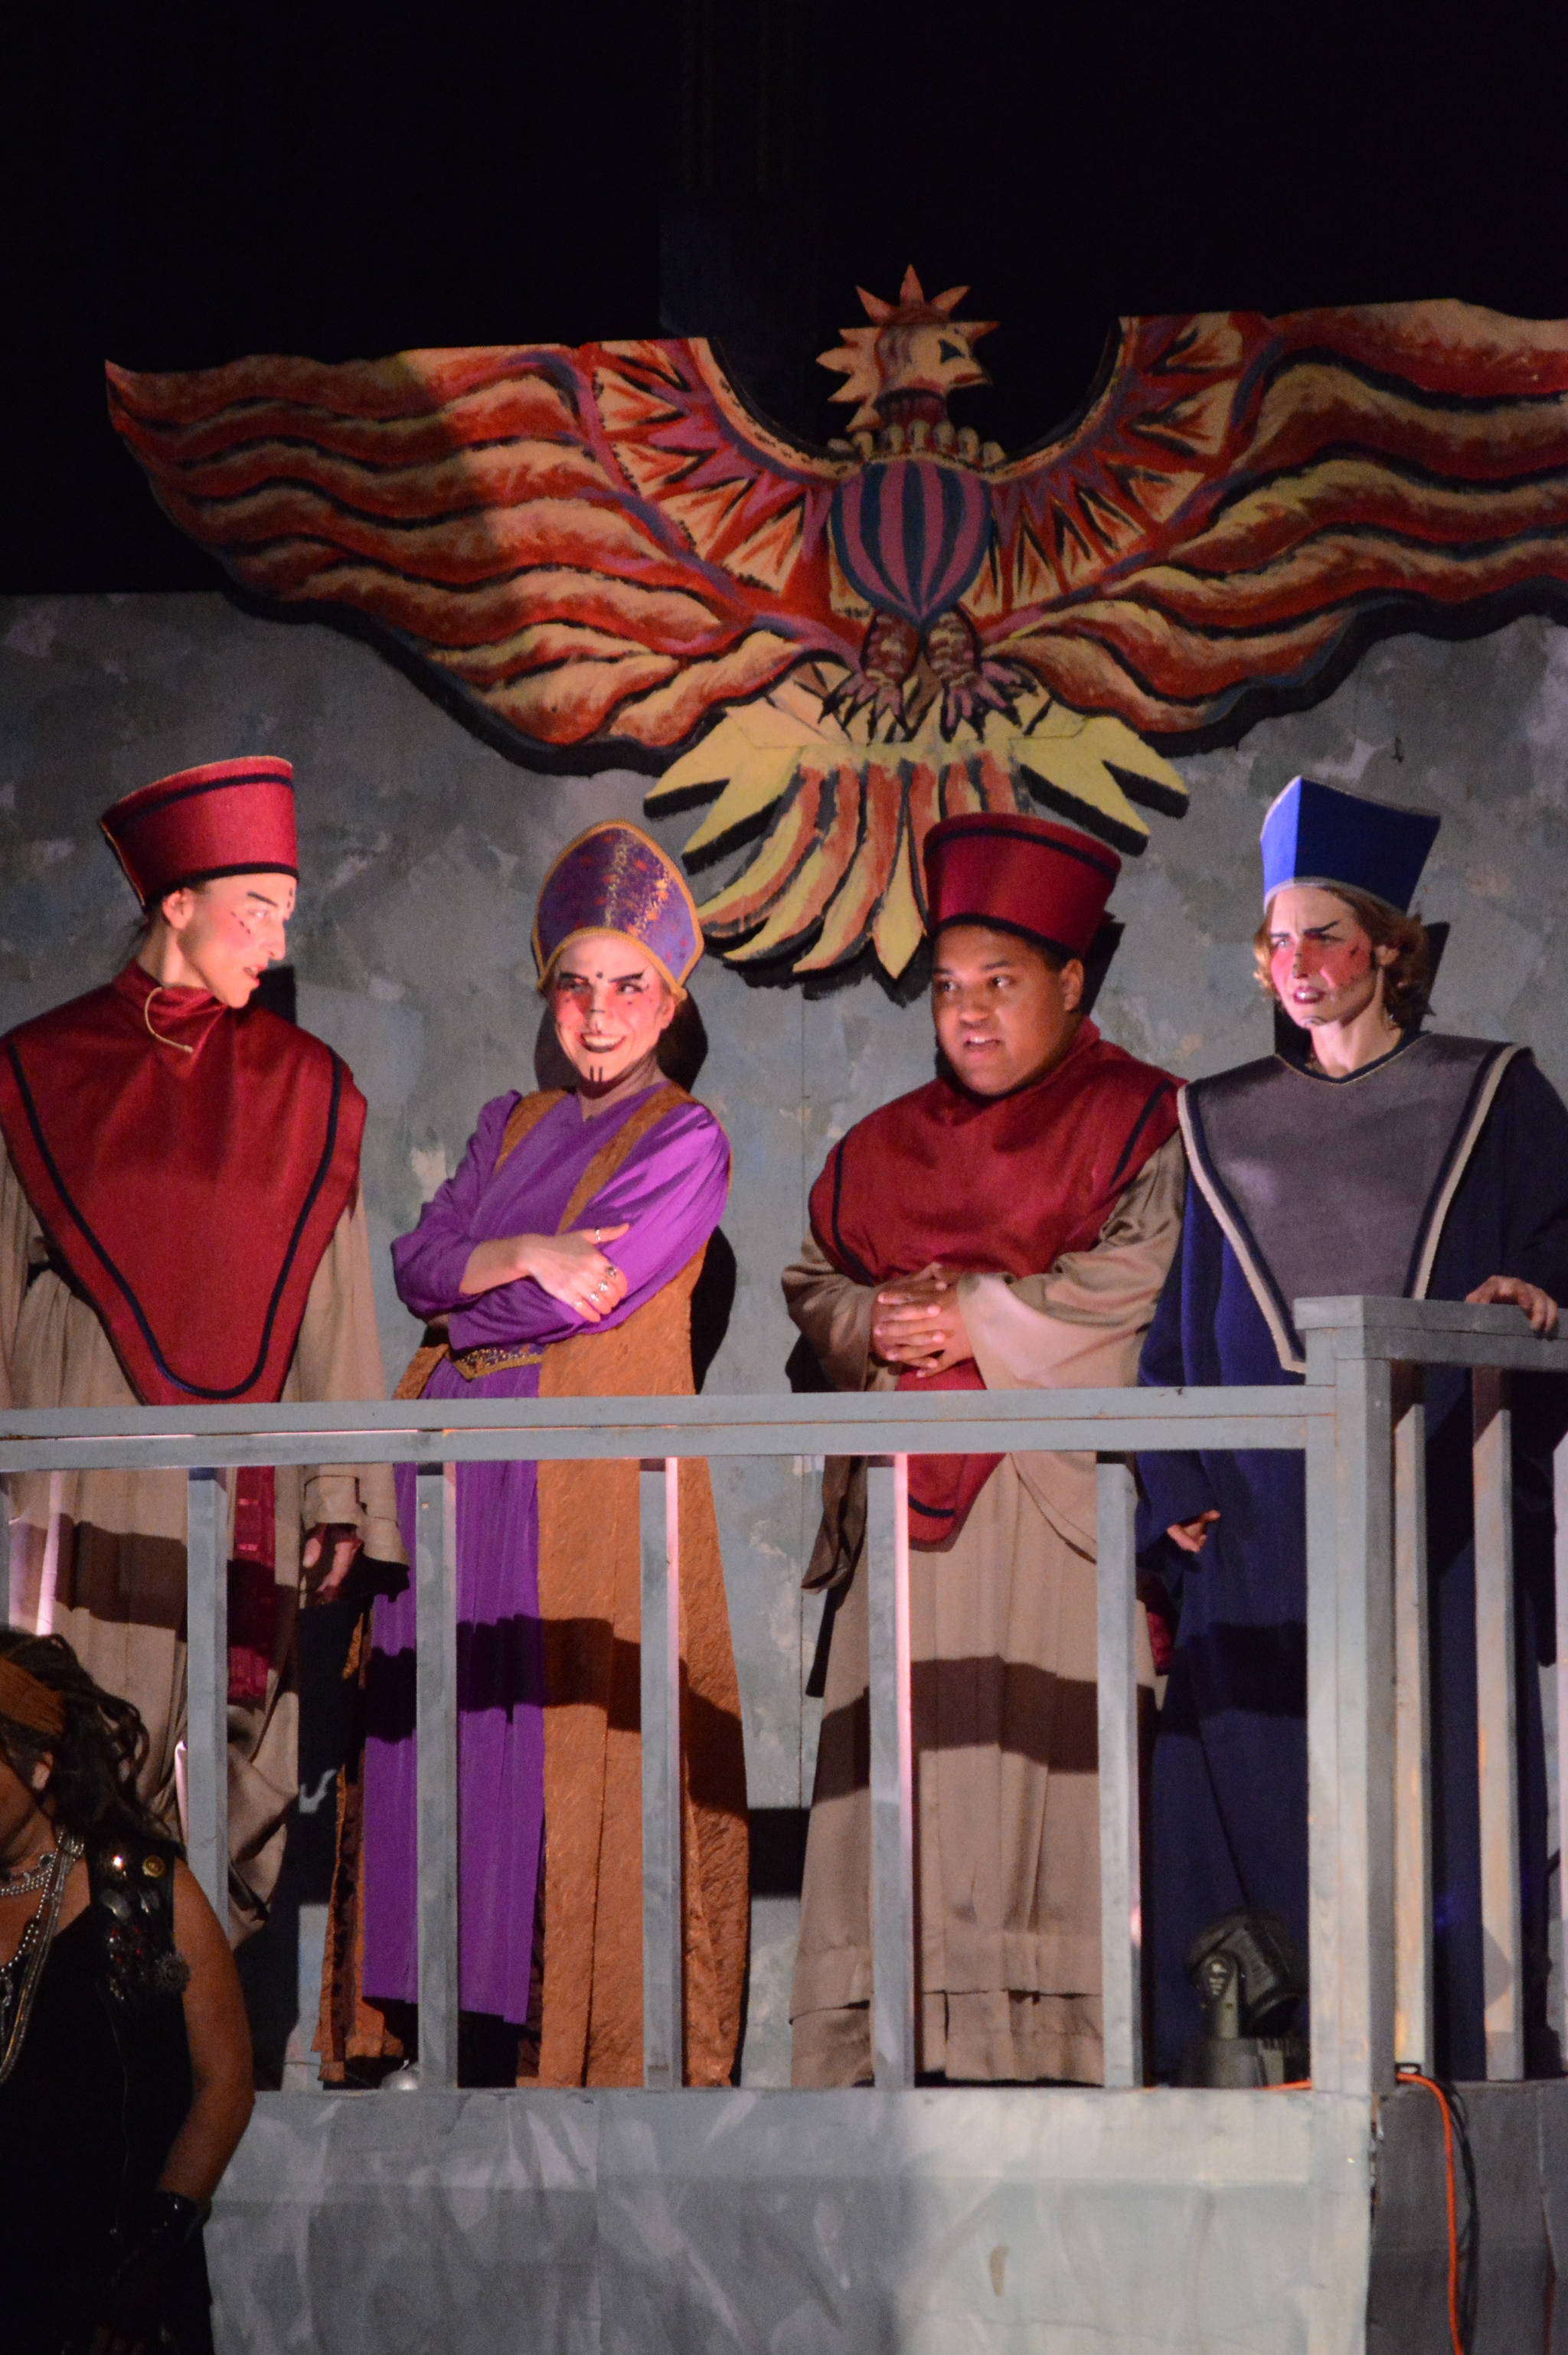 """Susan Cates Blackmon, second from left, as Caiaphas, and Adele Person, left, Falcom Greear, second from right, and Jenny Medley, right, all as priests, rehearse a scene from """"Jesus Christ Superstar"""" on Monday, Oct. 2, 2017 at Mariner Theatre in Homer, Alaska. The musical opens Friday, Oct. 6. (Photo by Michael Armstrong, Homer News)"""